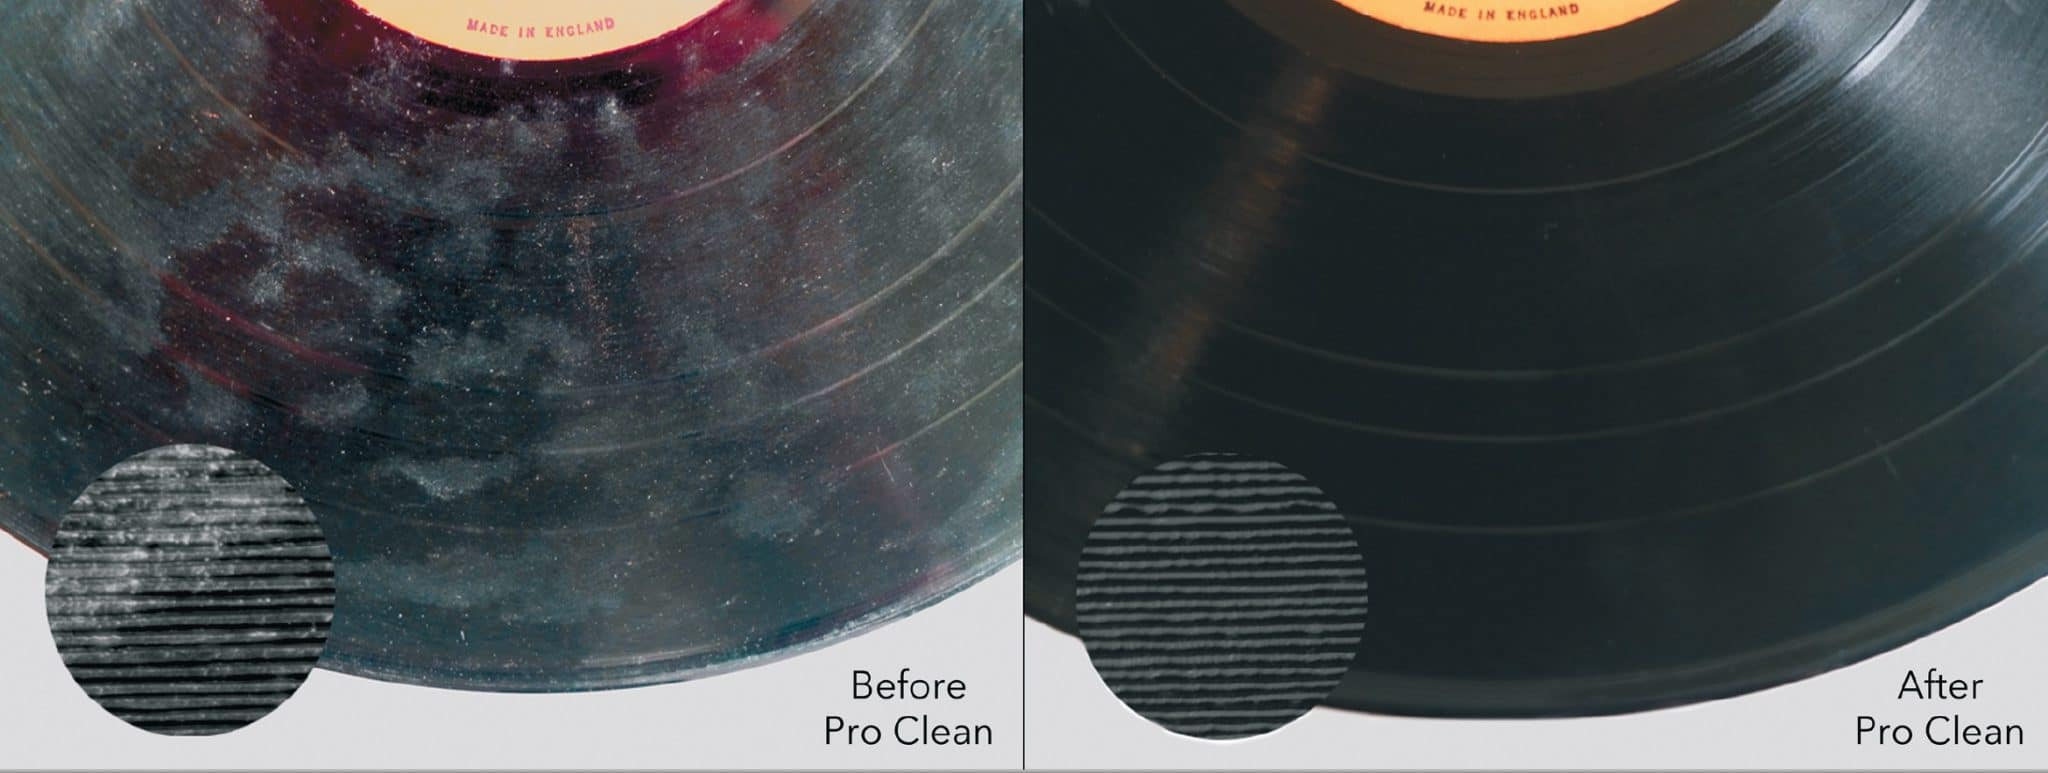 Pro-Clean from Vinylene UK: Vinyl Record Cleaning service